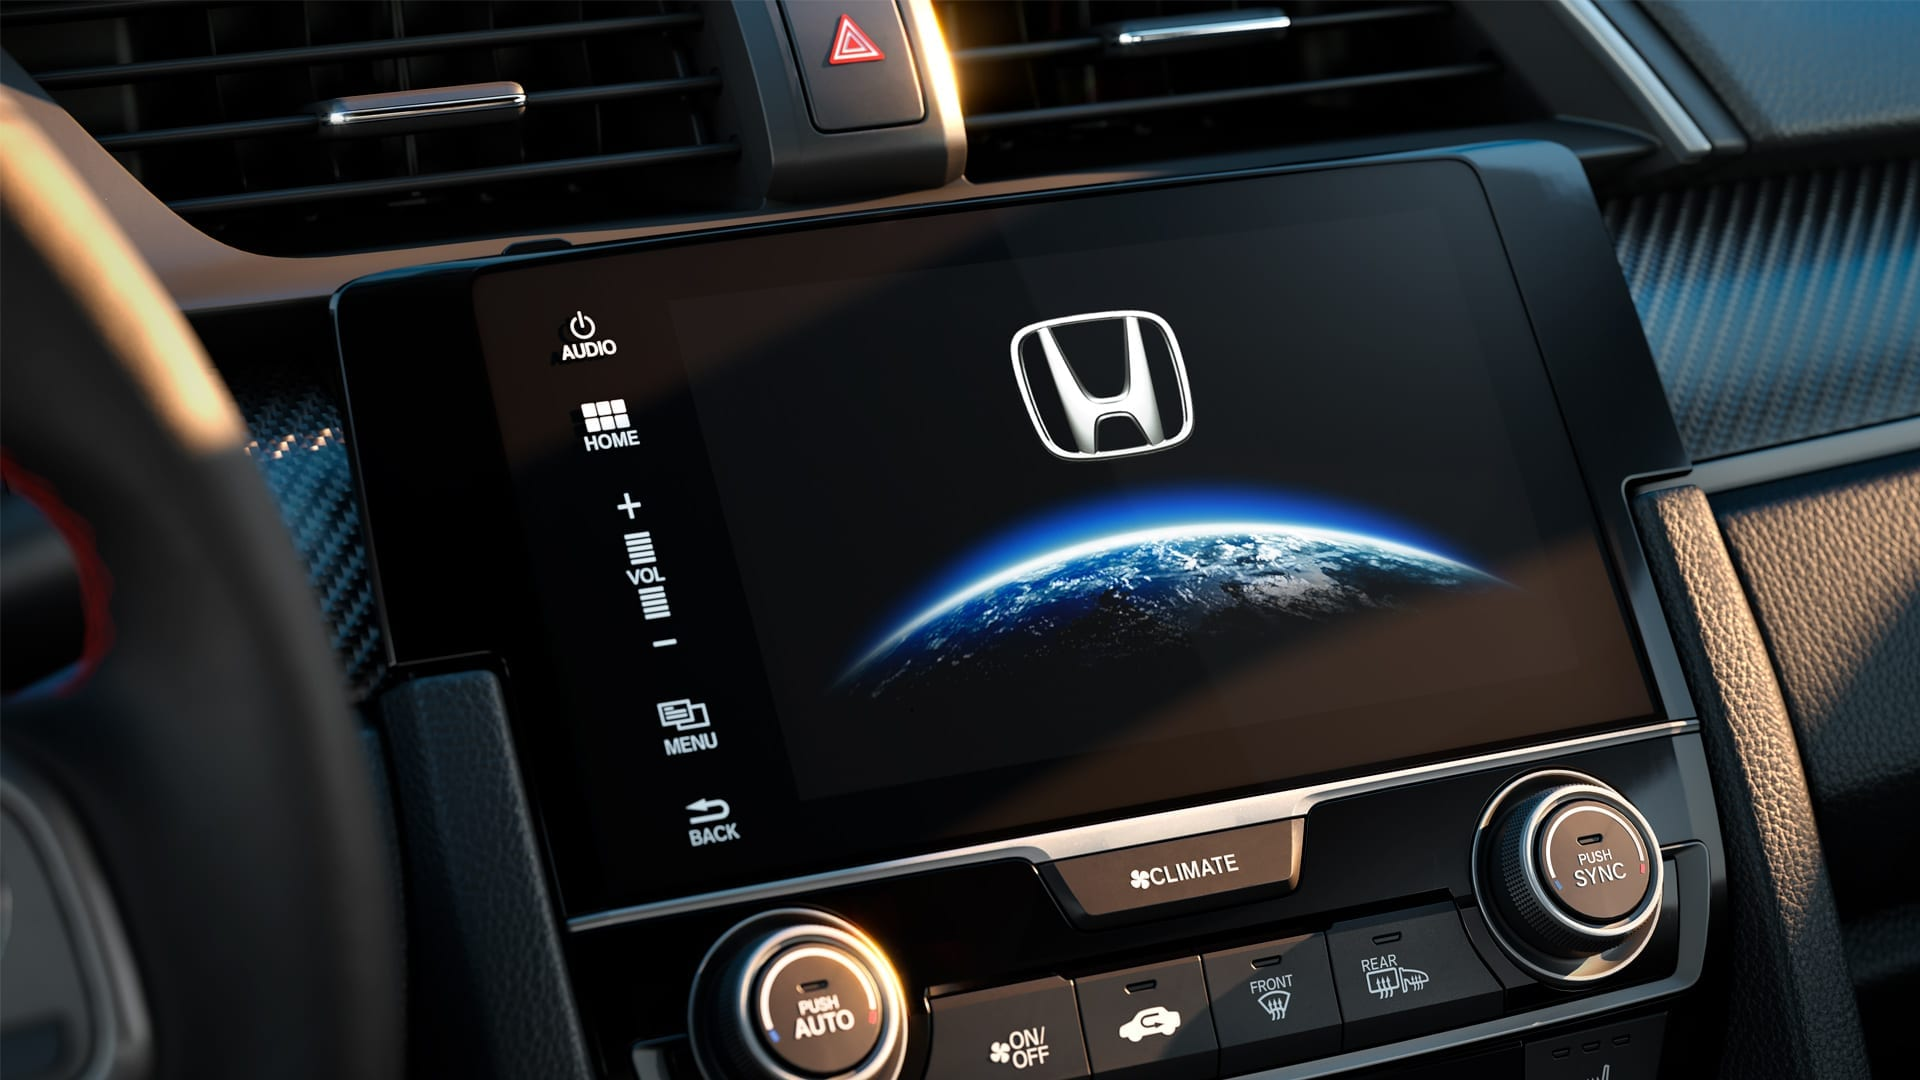 "Civic SI - Multimídia de 7"" multi-touchscreen com GPS integrado e Premium Audio com 10 alto-falantes"